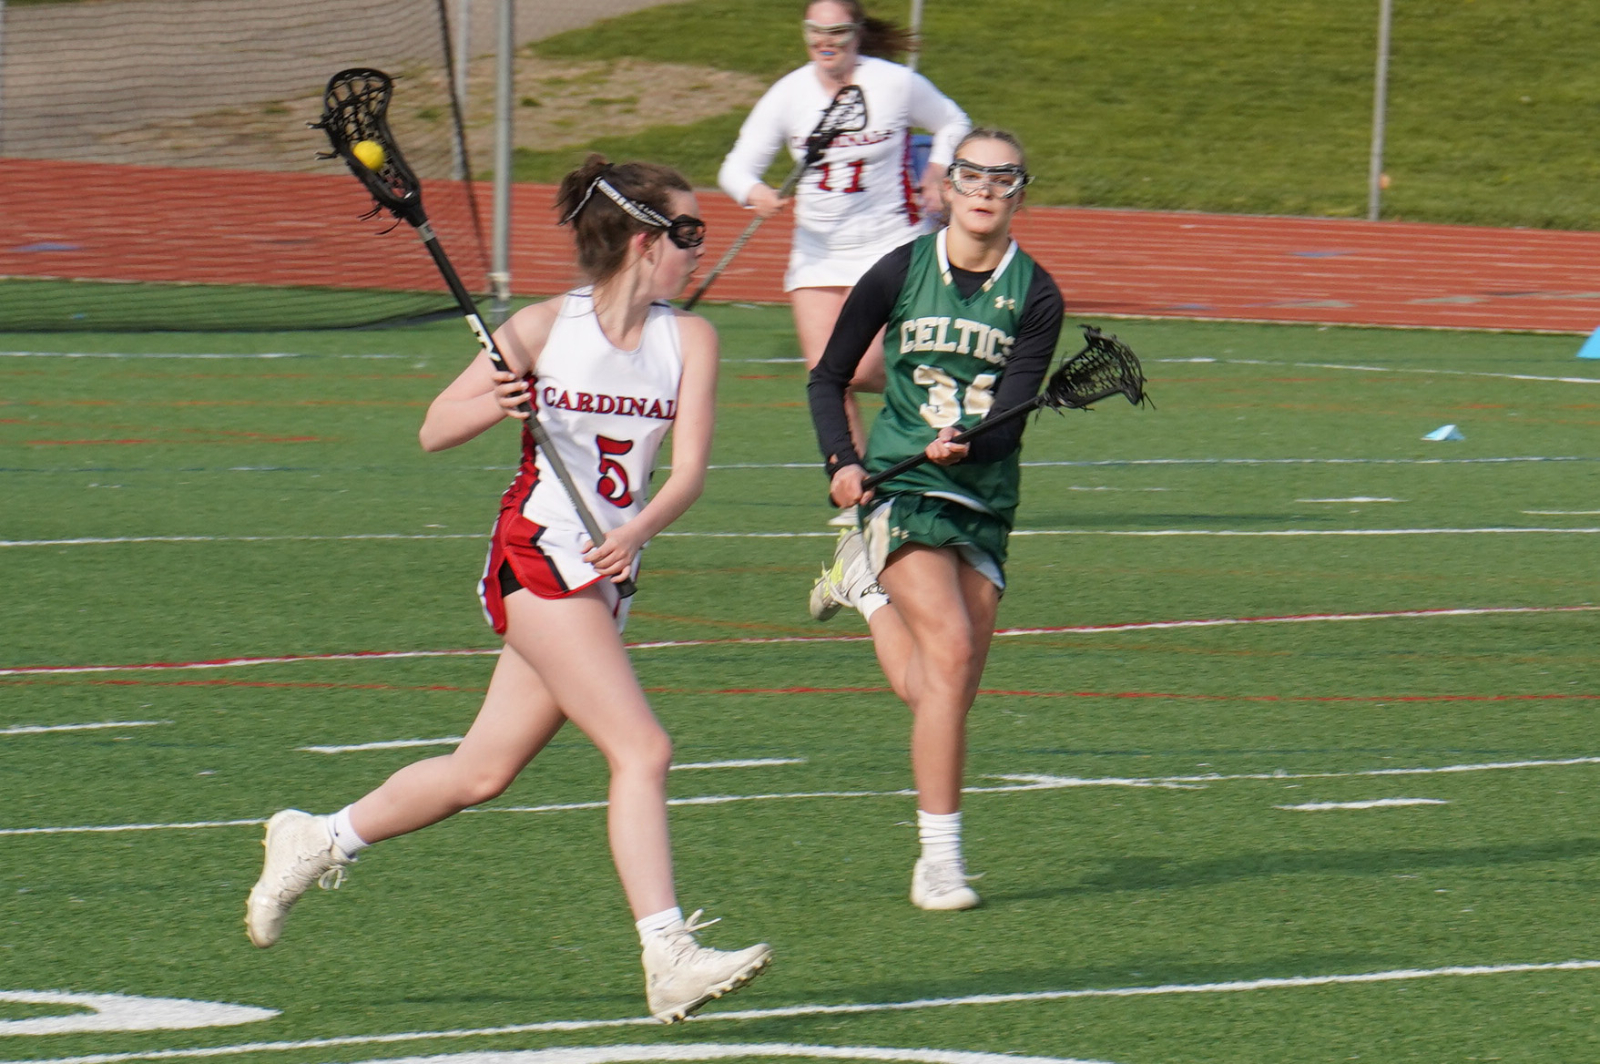 Girls JV lacrosse vs. Thomas Worthington 4/20